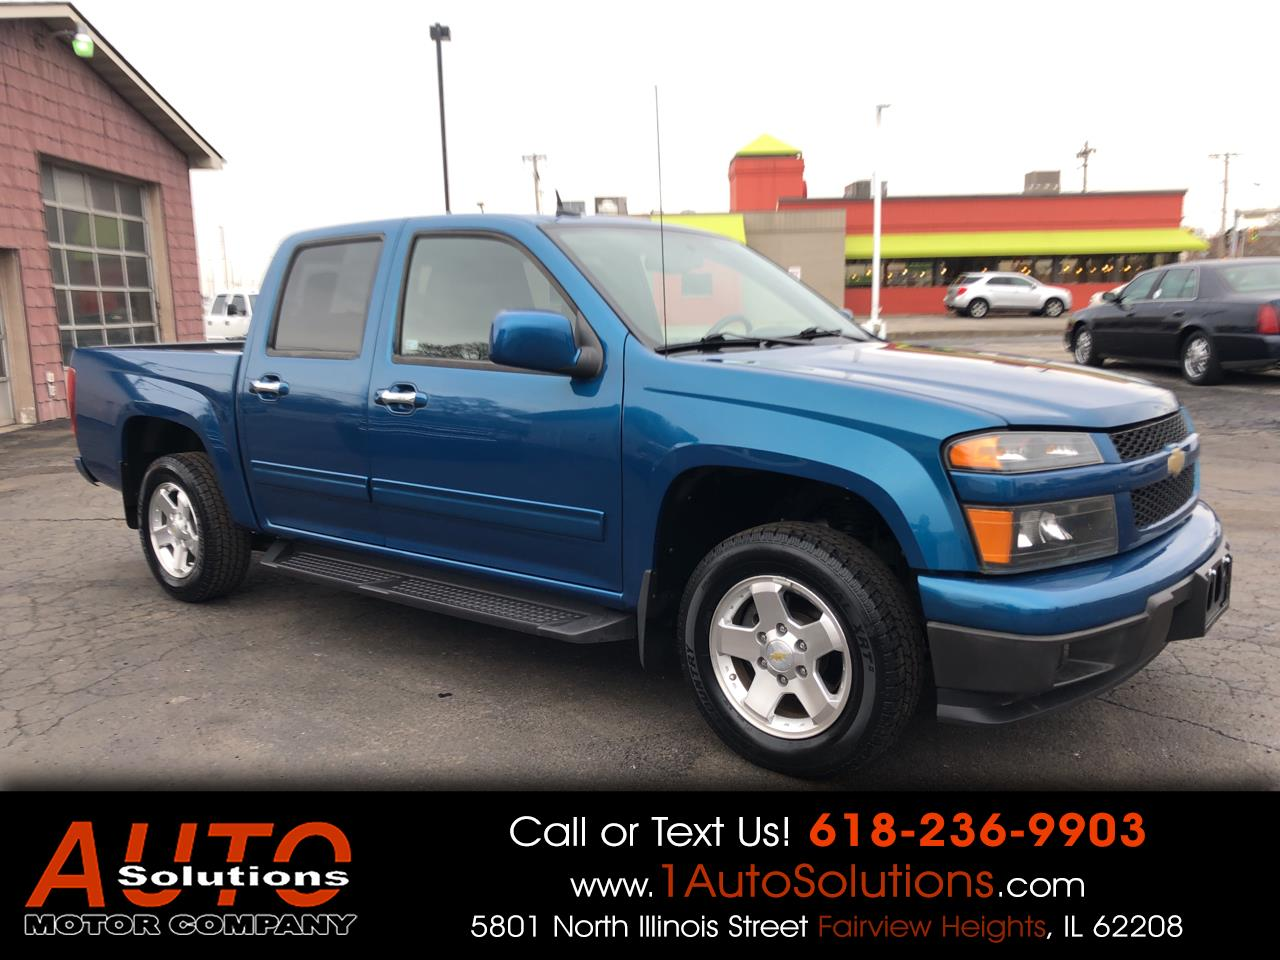 2011 Chevrolet Colorado 2WD Crew Cab 126.0